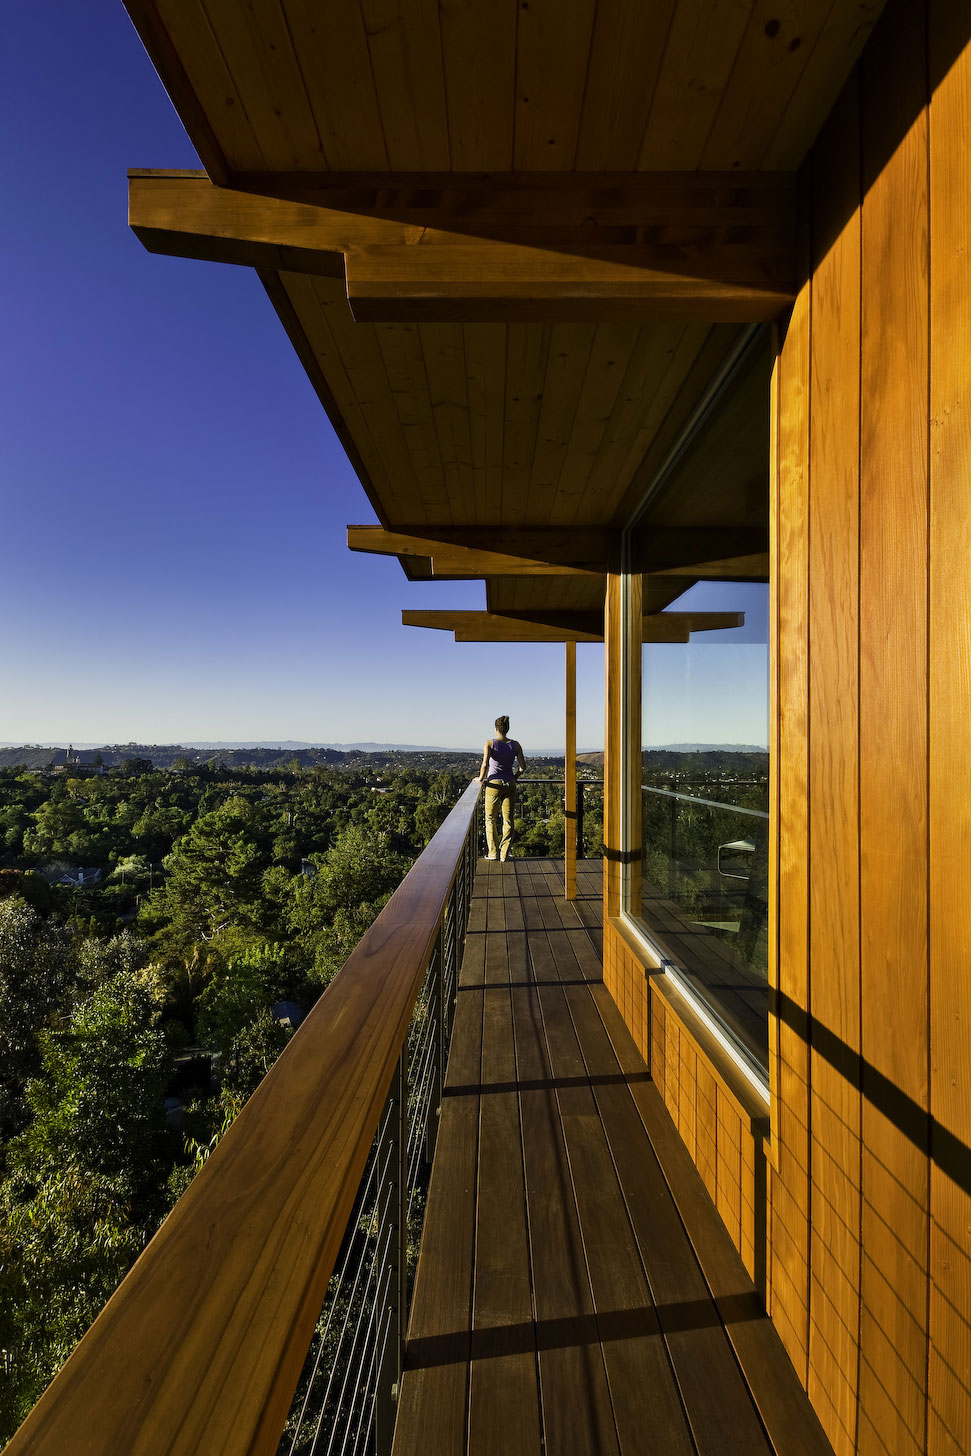 Wooden Balcony, Mid-Century Modern Home in Santa Barbara, California